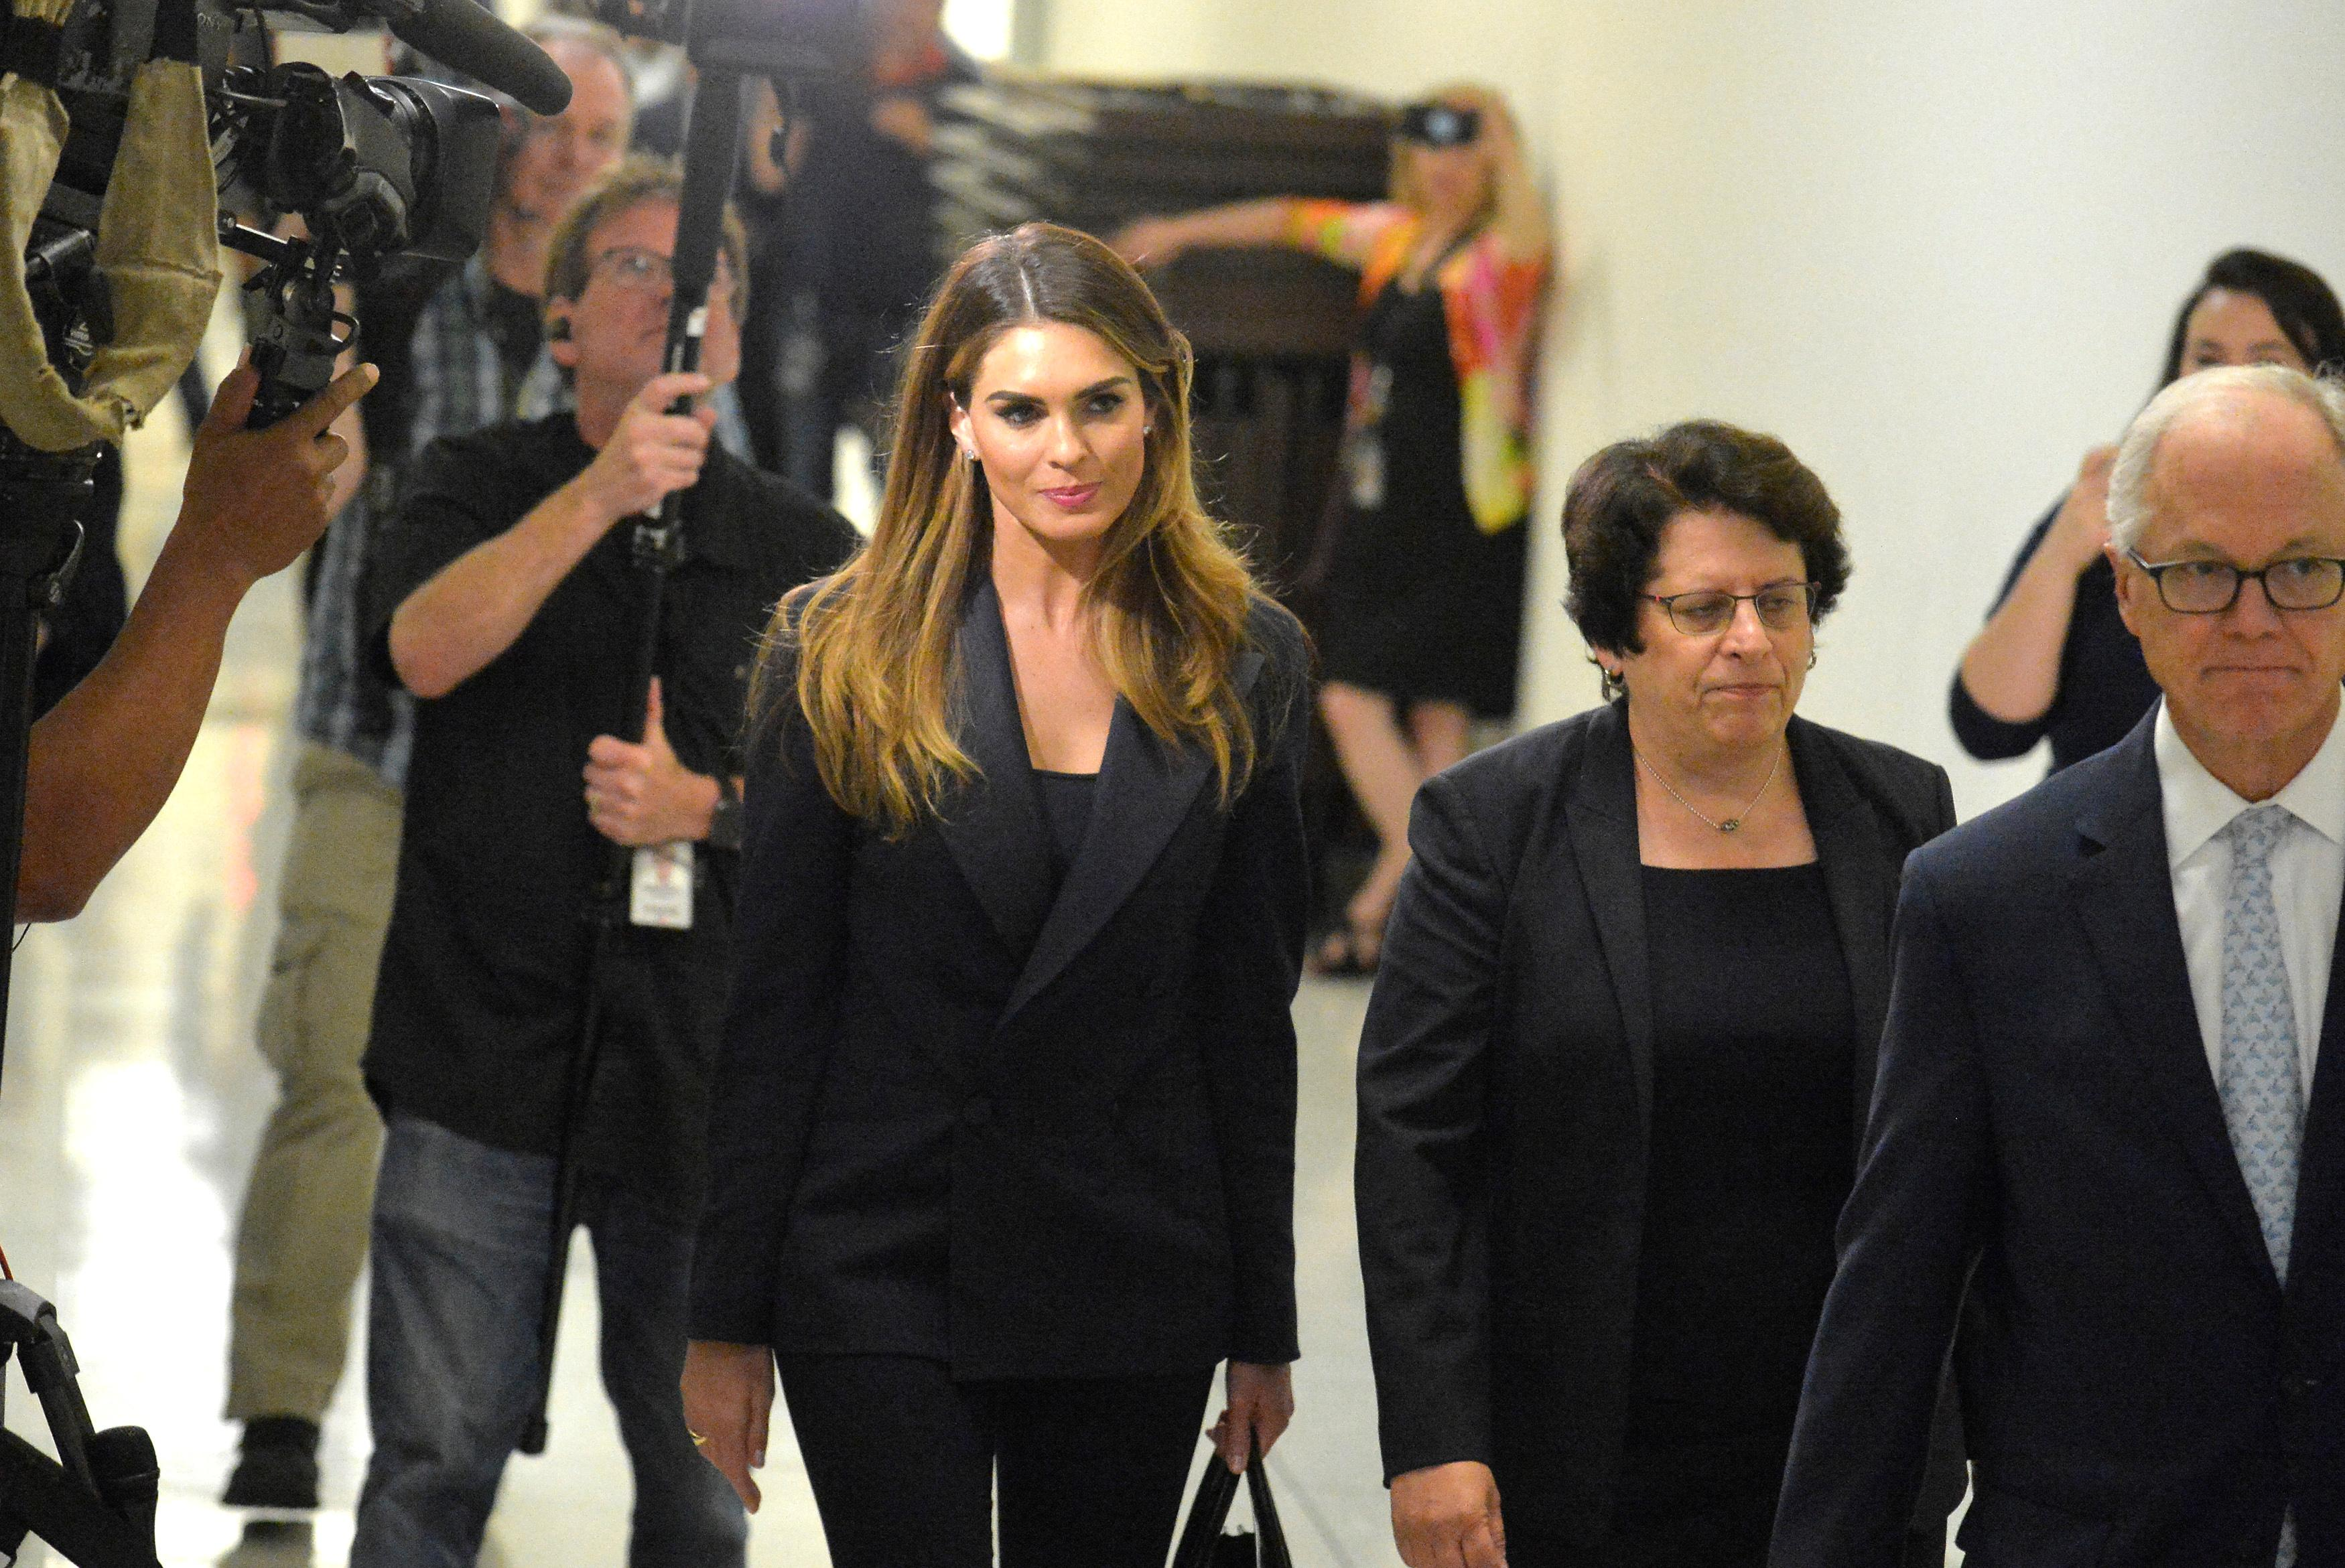 Former Trump aide Hope Hicks frustrates Democrats with limited testimony